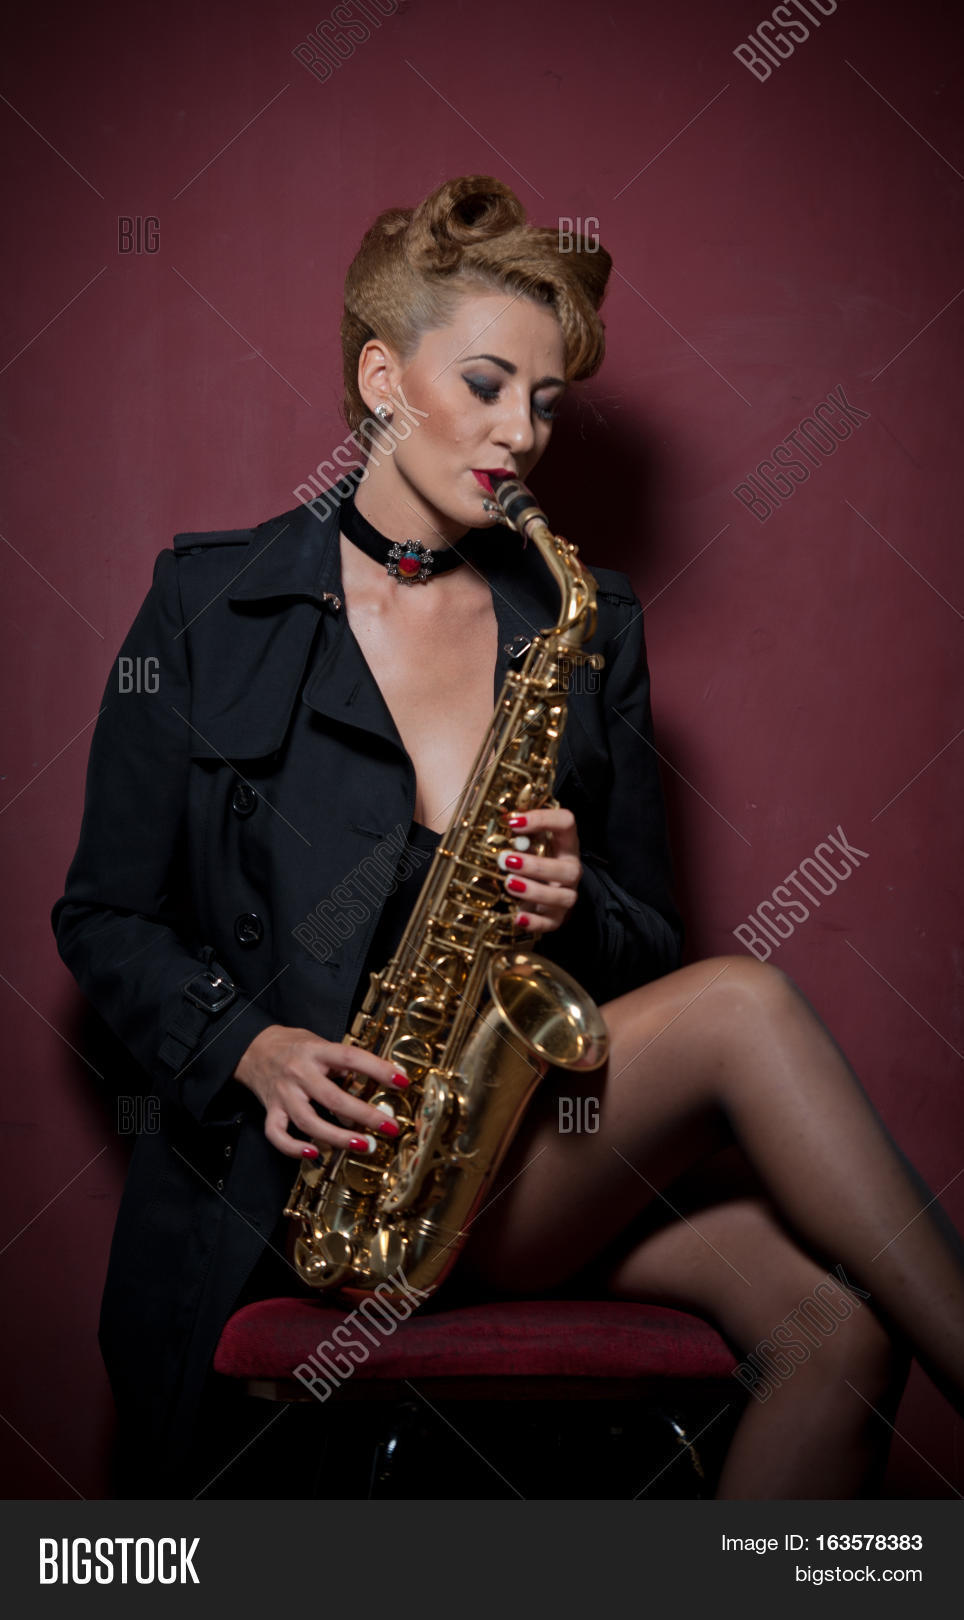 Pictures Of Sexy Black Woman And Saxaphone